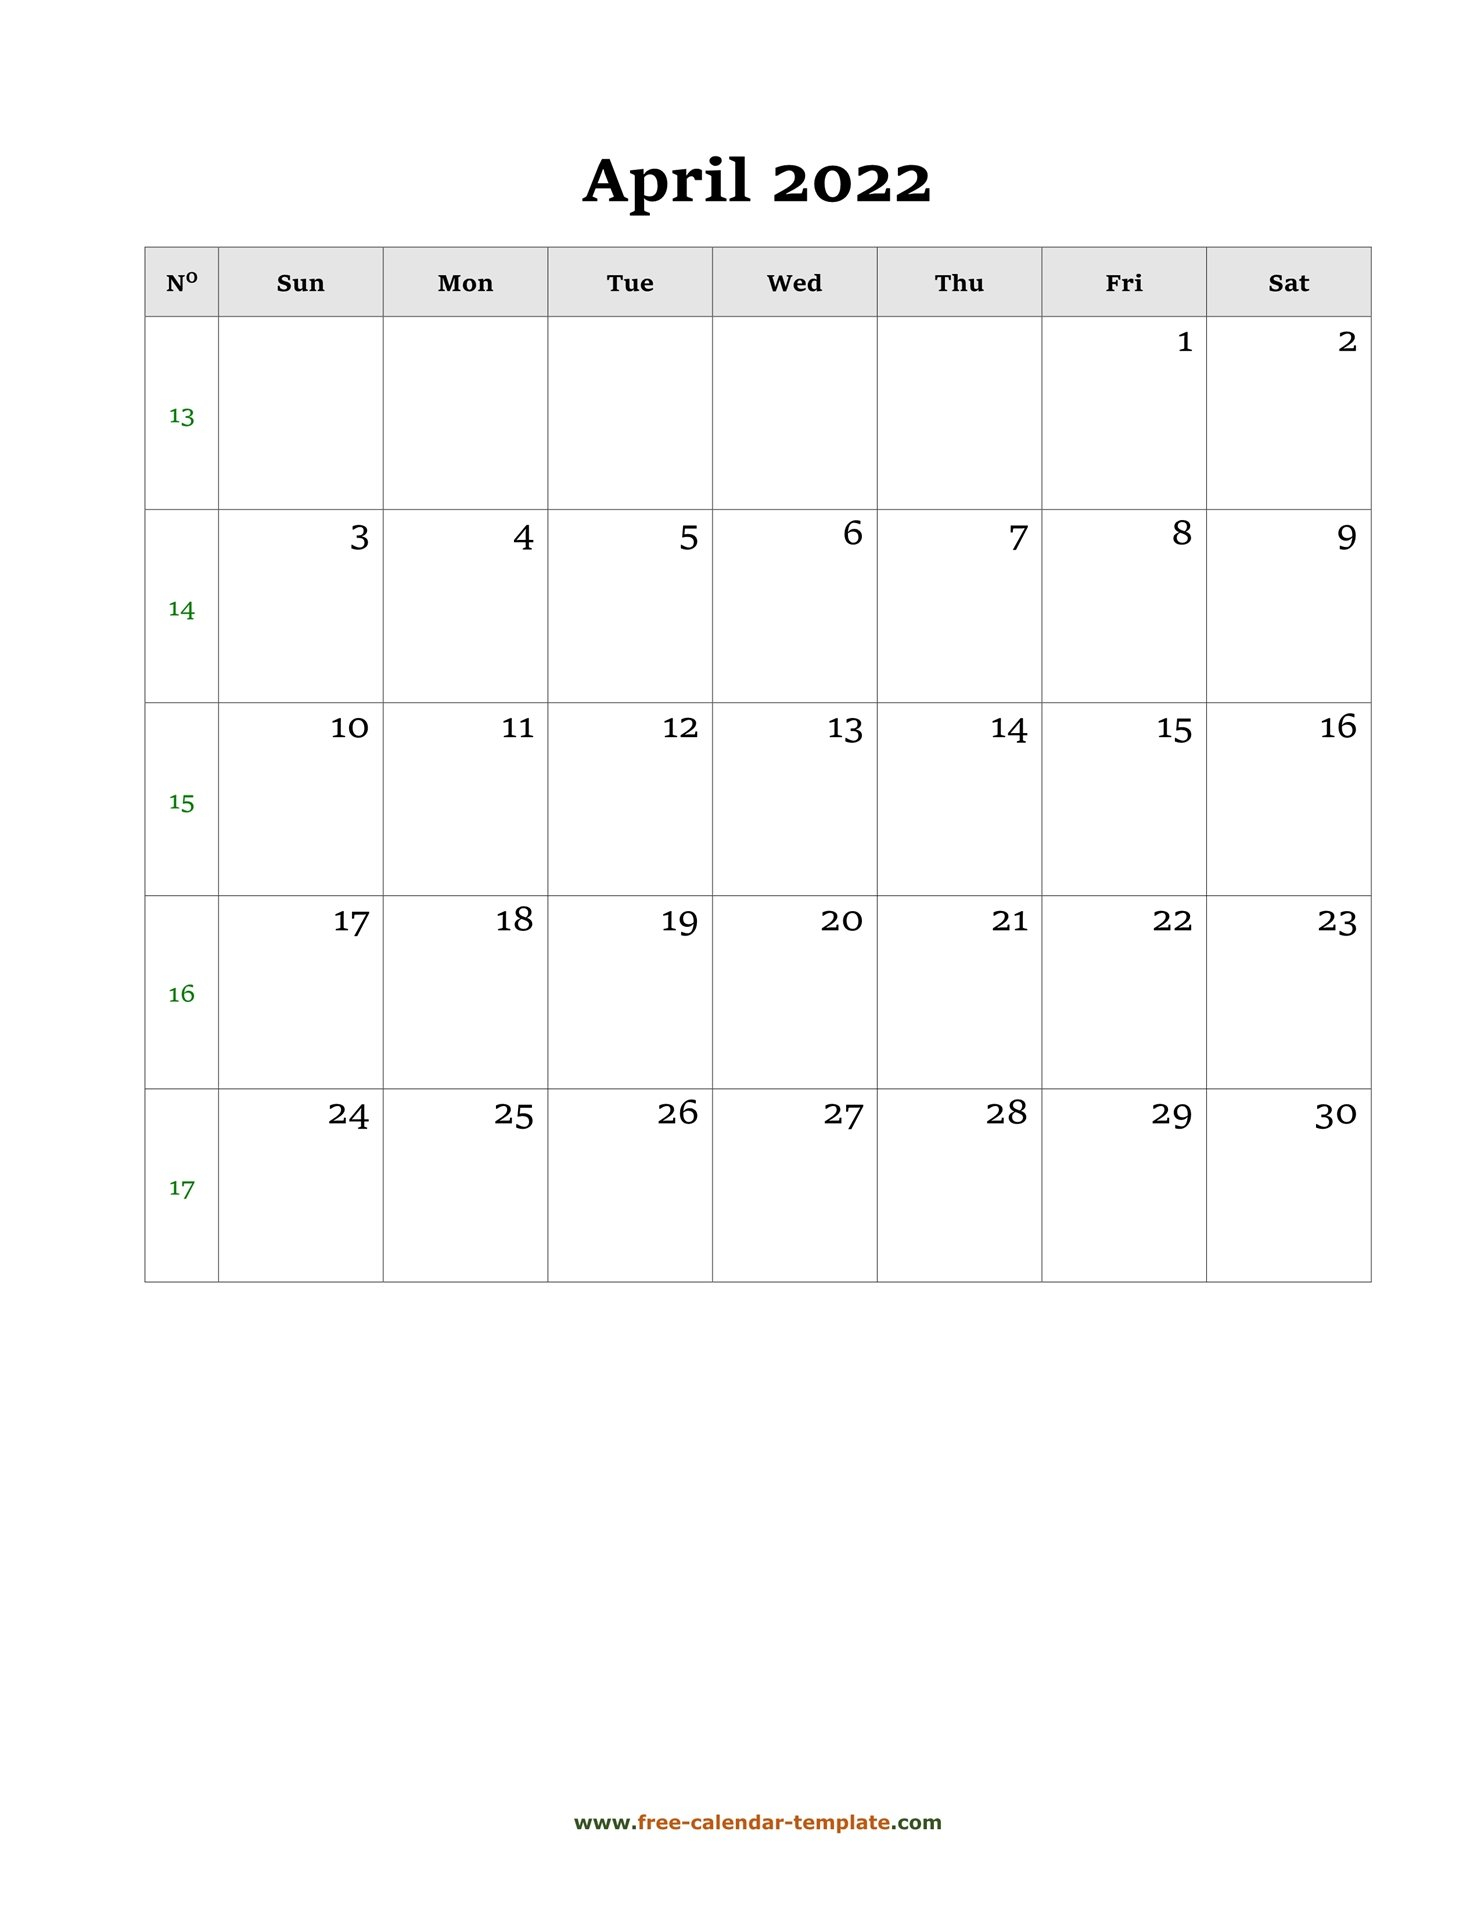 April Calendar 2022 Simple Design With Large Box On Each with April 2022 Calendar To Print